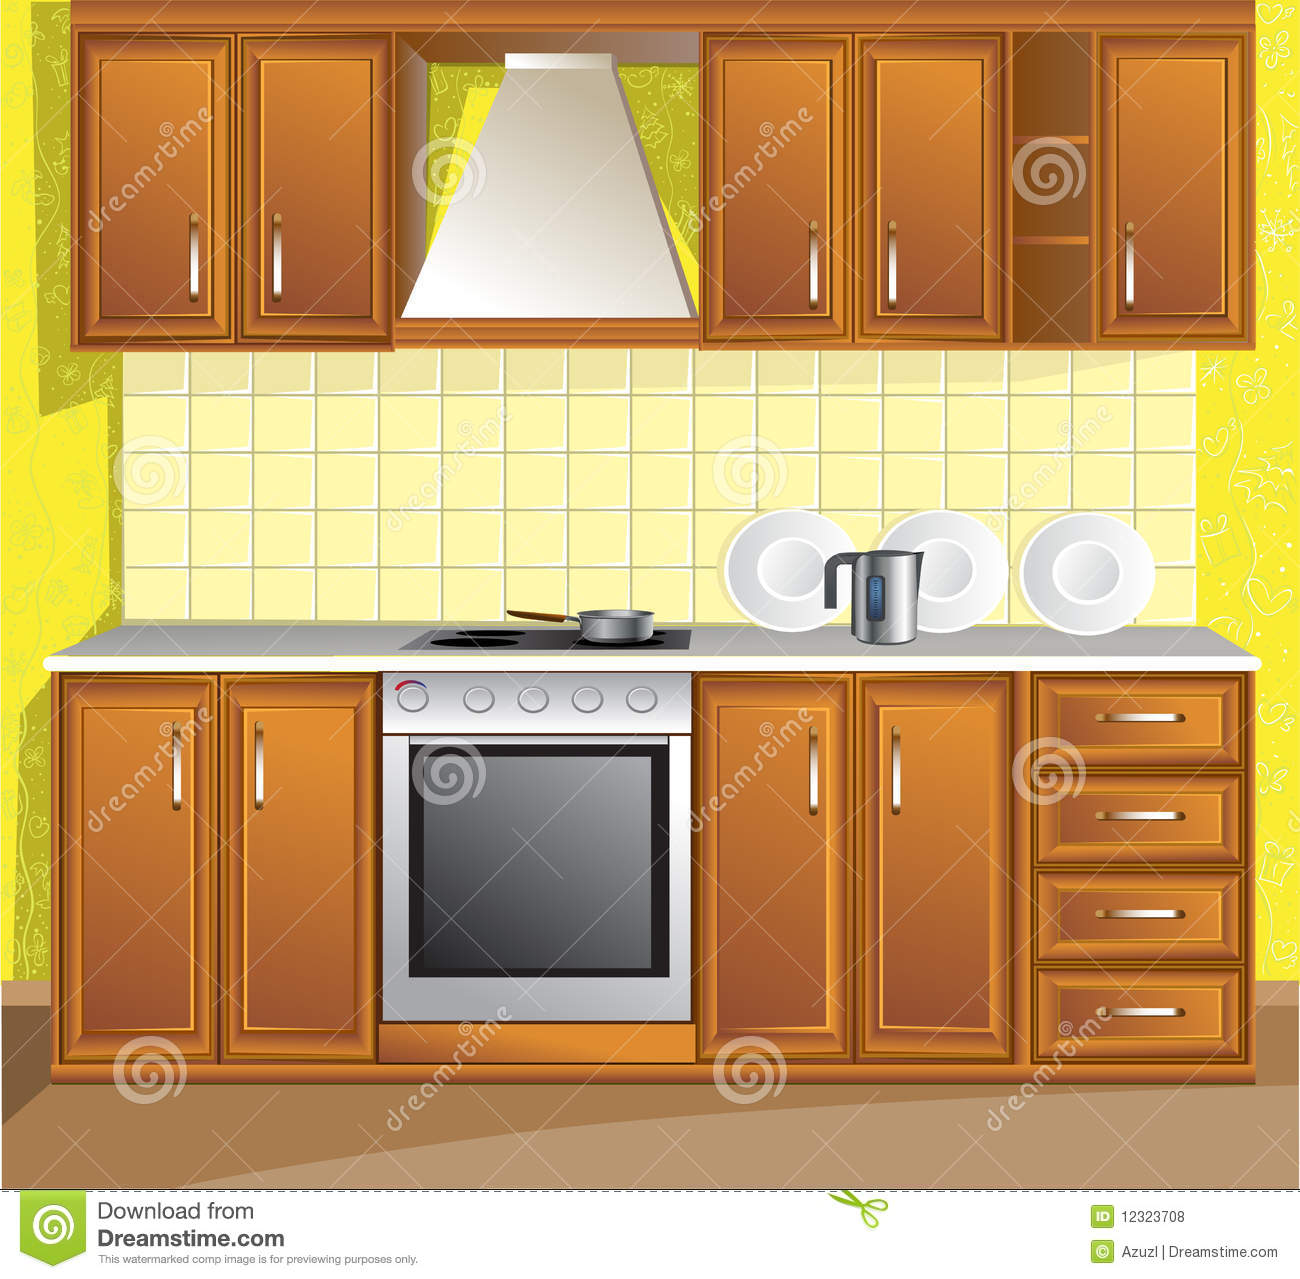 Light Kitchen Room Royalty Free Stock Photos - Image: 12323708